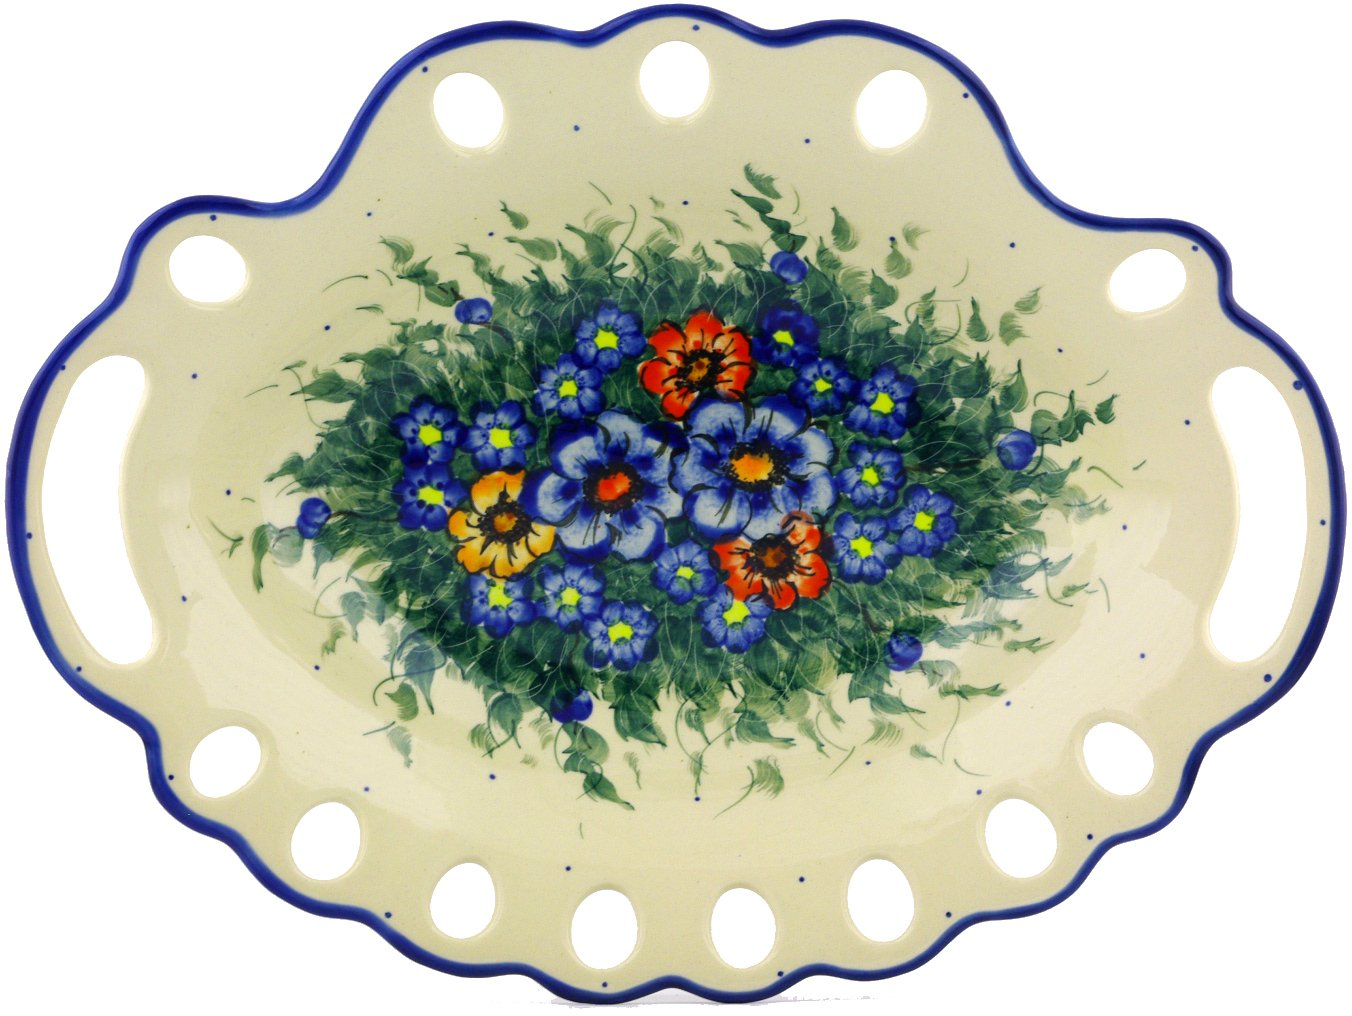 Polish Pottery 15½-inch Serving Platter / Bowl with Holes (Spring Bouquet Theme) Signature UNIKAT + Certificate of Authenticity